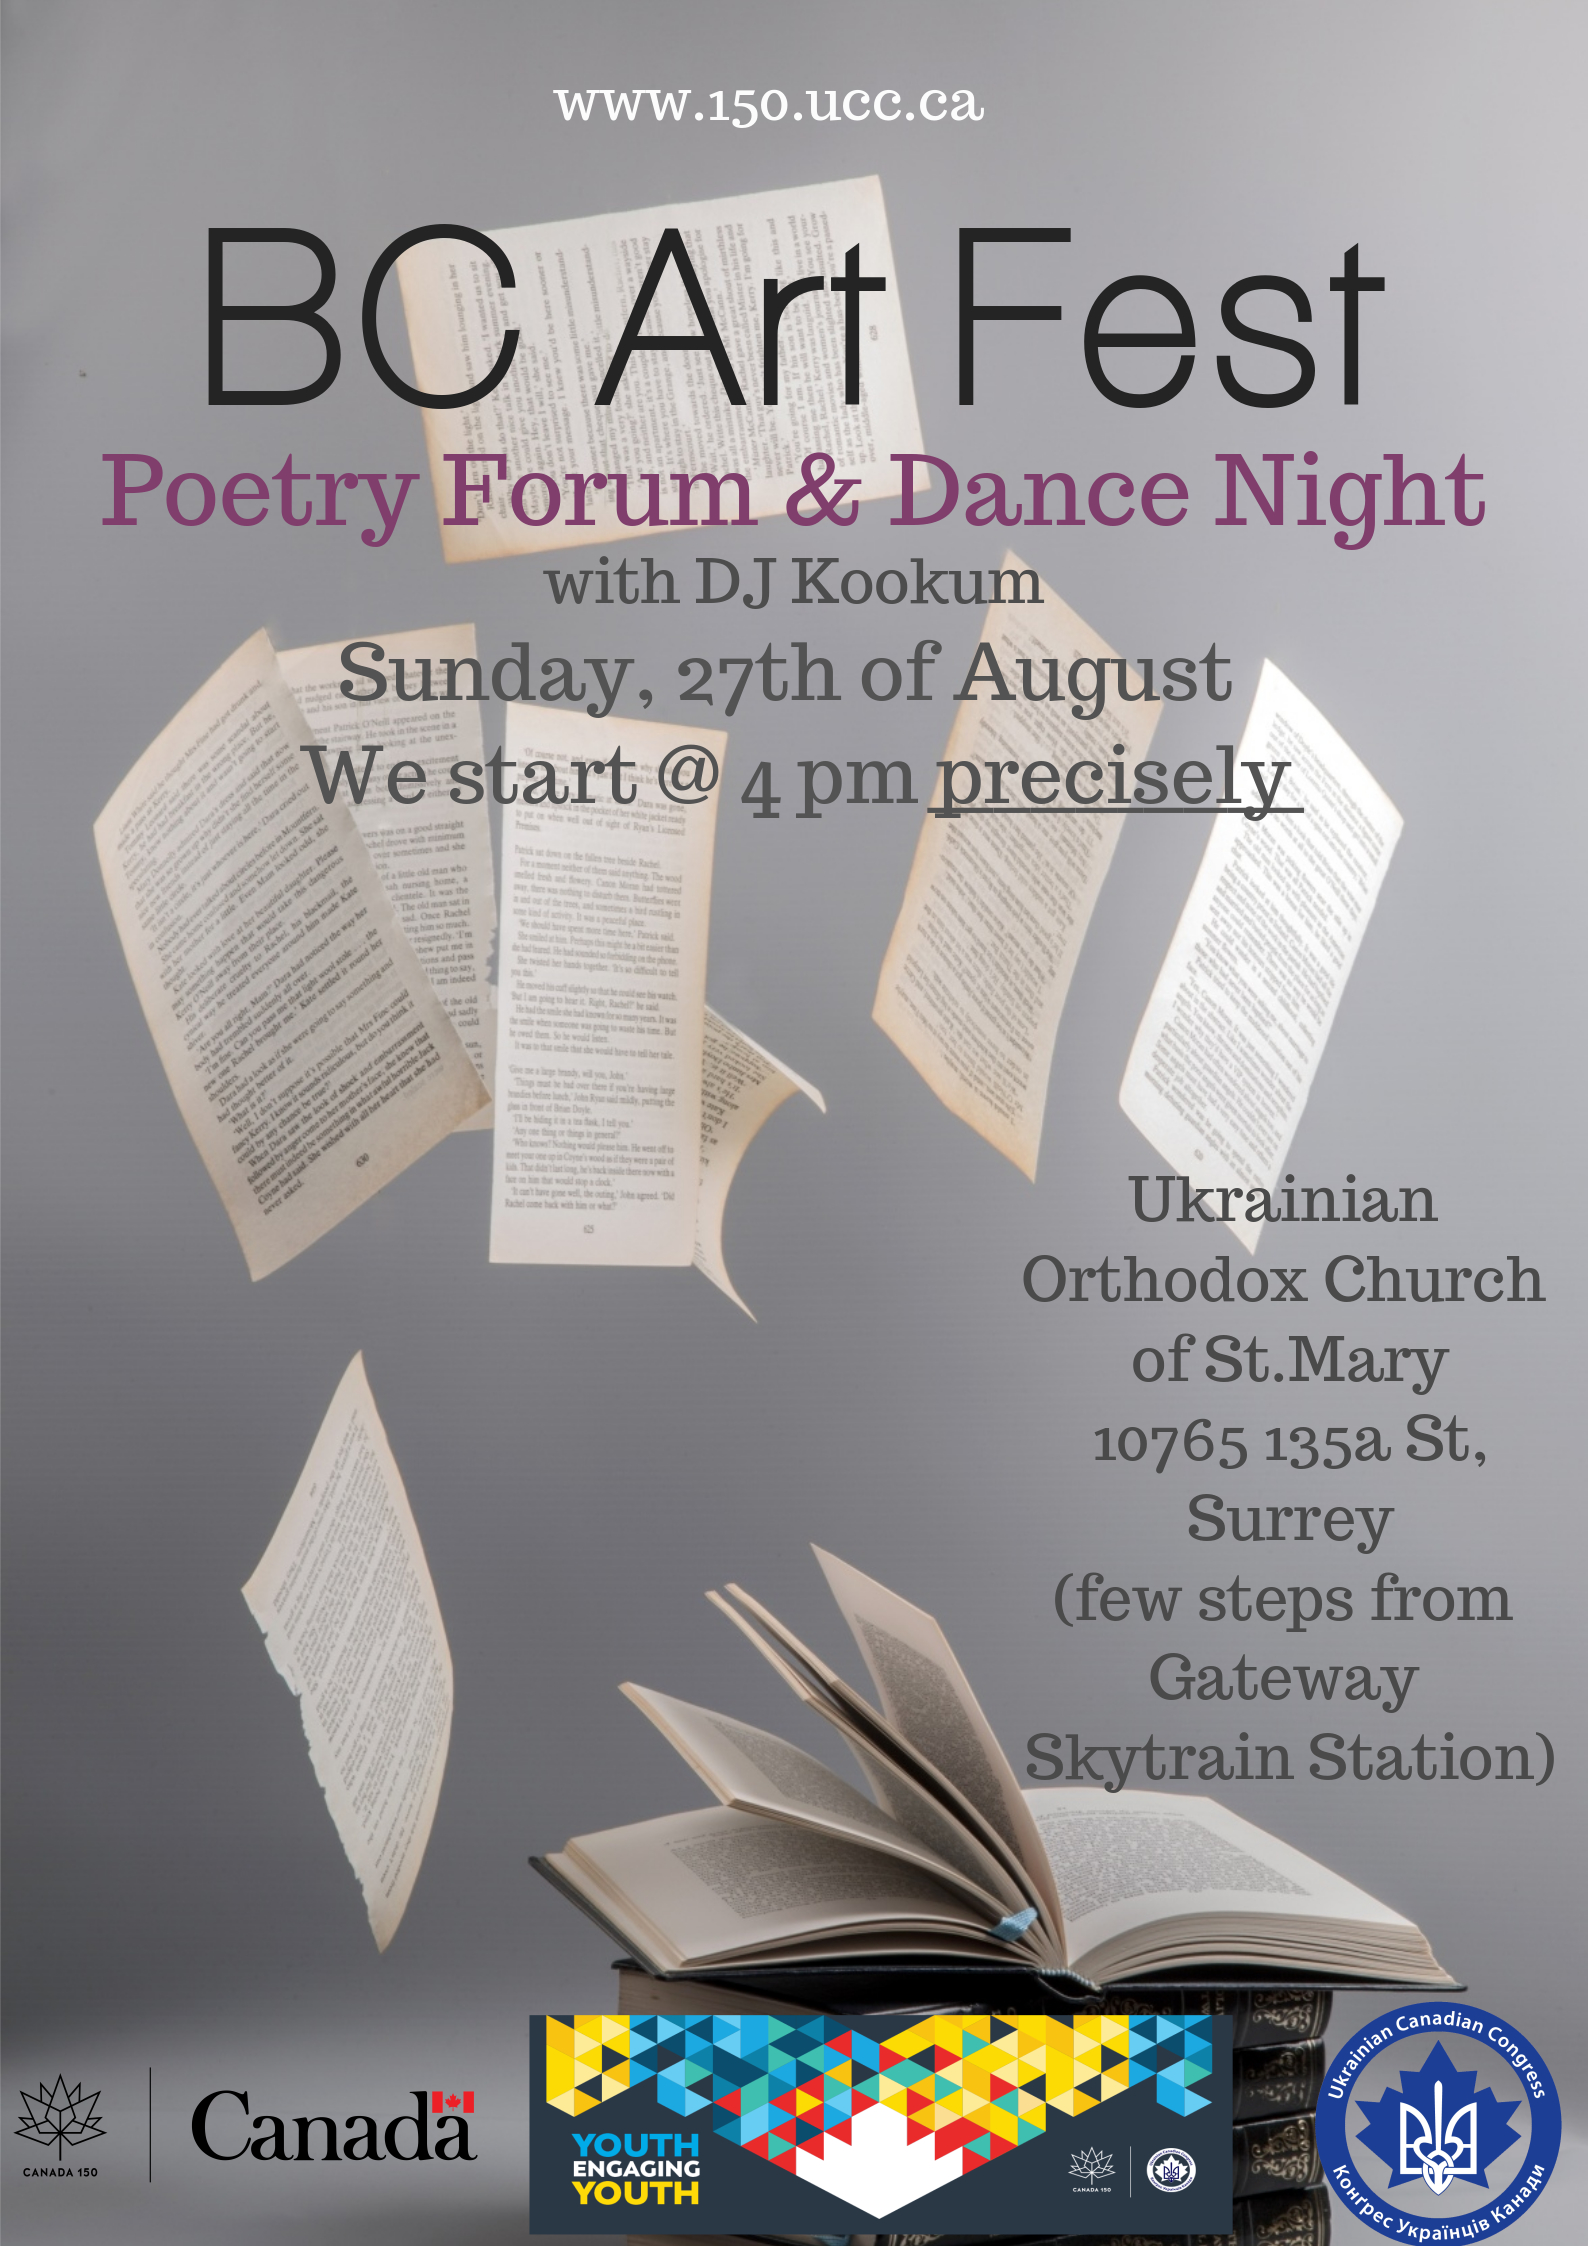 BC Art Fest: Poetry Forum and Dance Night